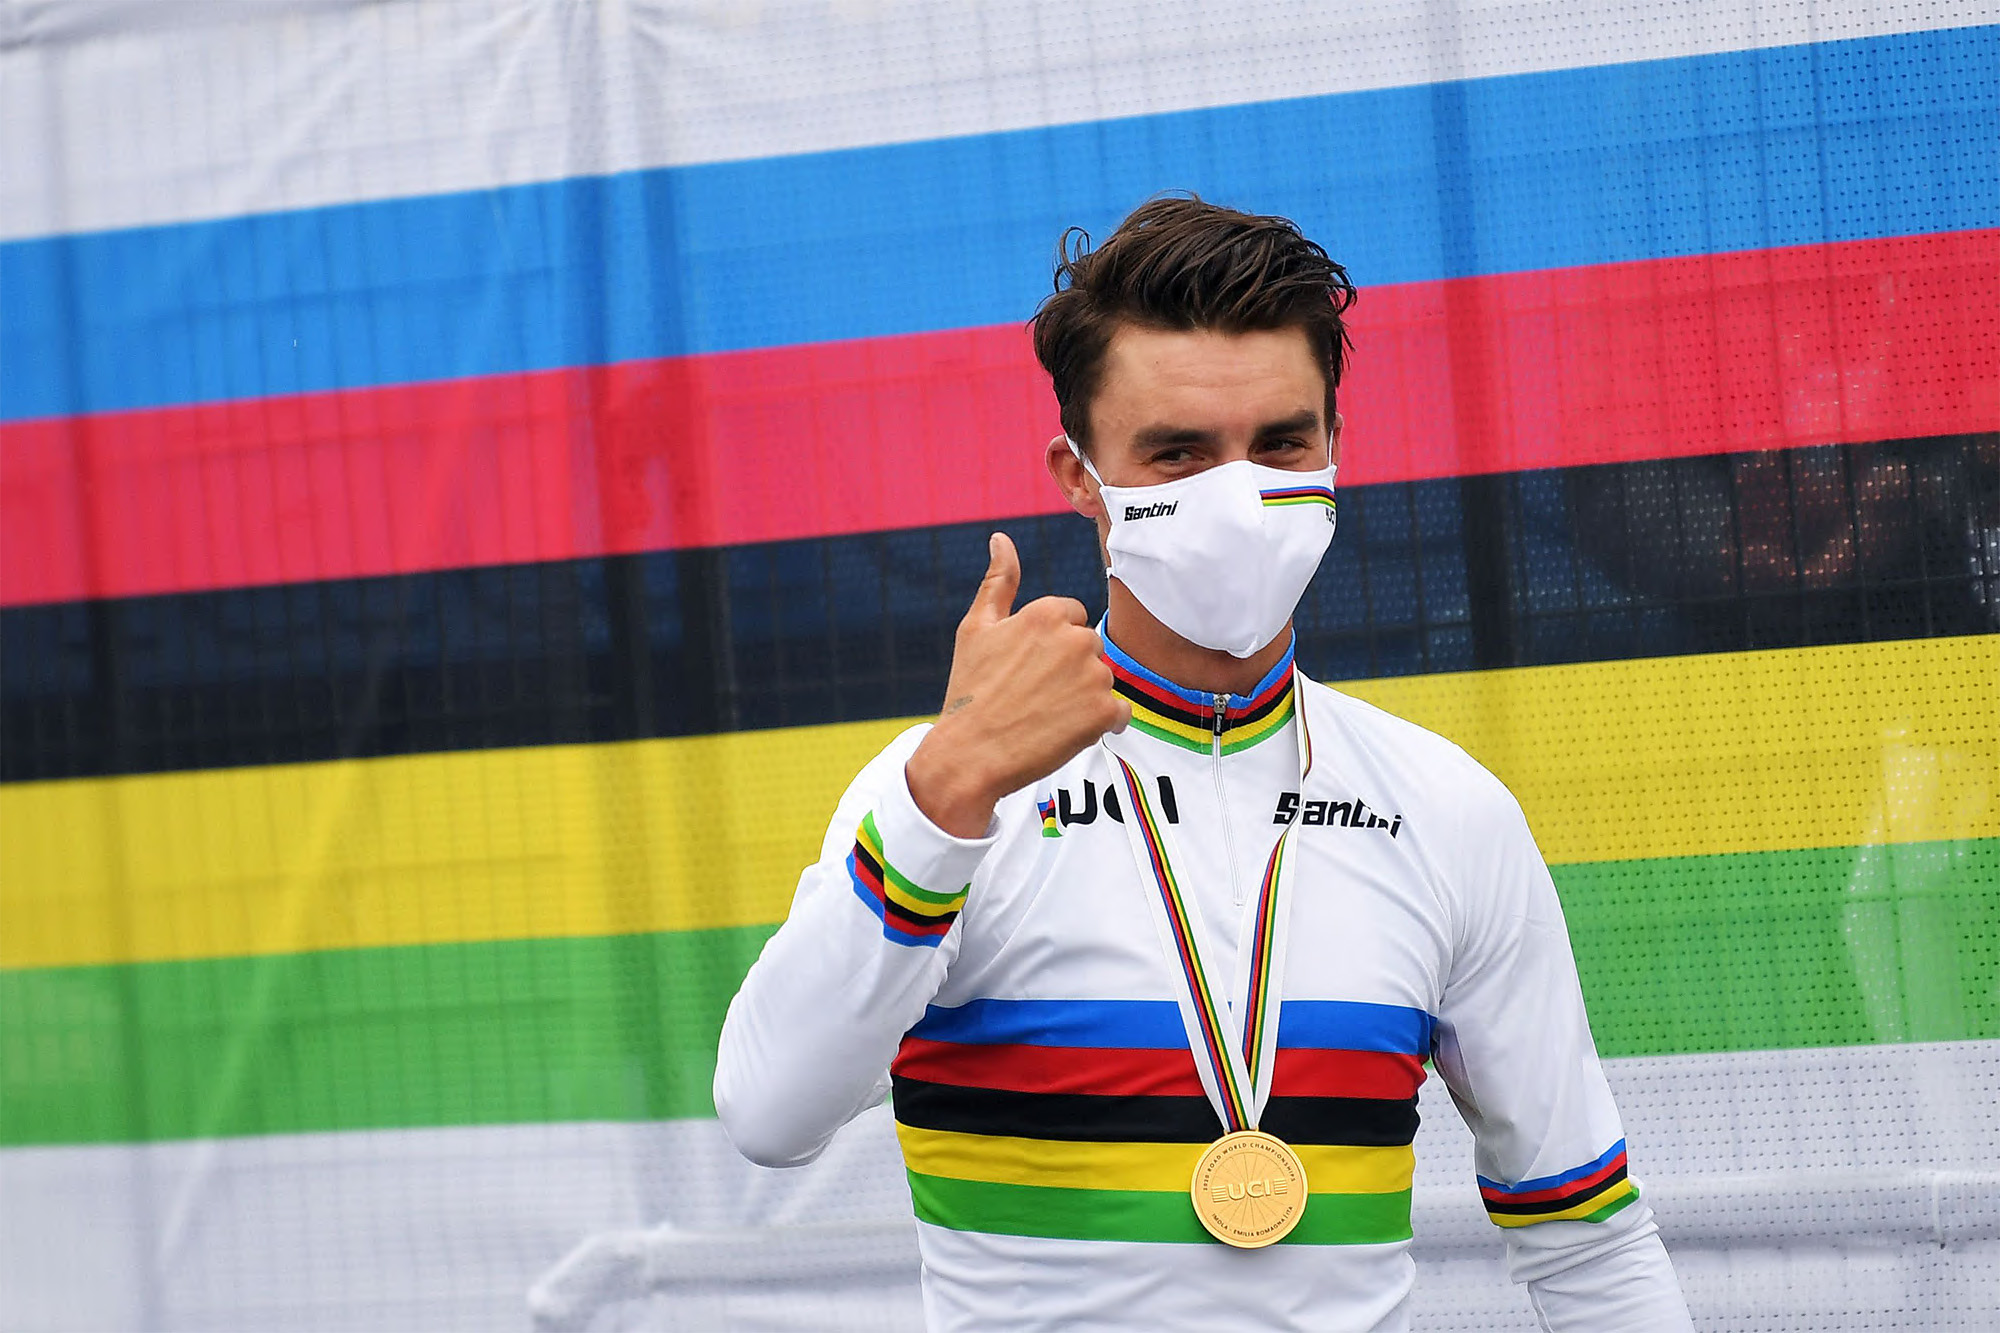 IMOLA, ITALY - SEPTEMBER 27: Podium / Julian Alaphilippe of France Gold medal World Champion Jersey / Celebration / Mask / Covid Safety Measures / during the 93rd UCI Road World Championships 2020, Men Elite Road Race a 258,2km race from Imola to Imola - Autodromo Enzo e Dino Ferrari / @Imola_Er2020 / #Imola2020 / on September 27, 2020 in Imola, Italy. (Photo by Tim de Waele/Getty Images)